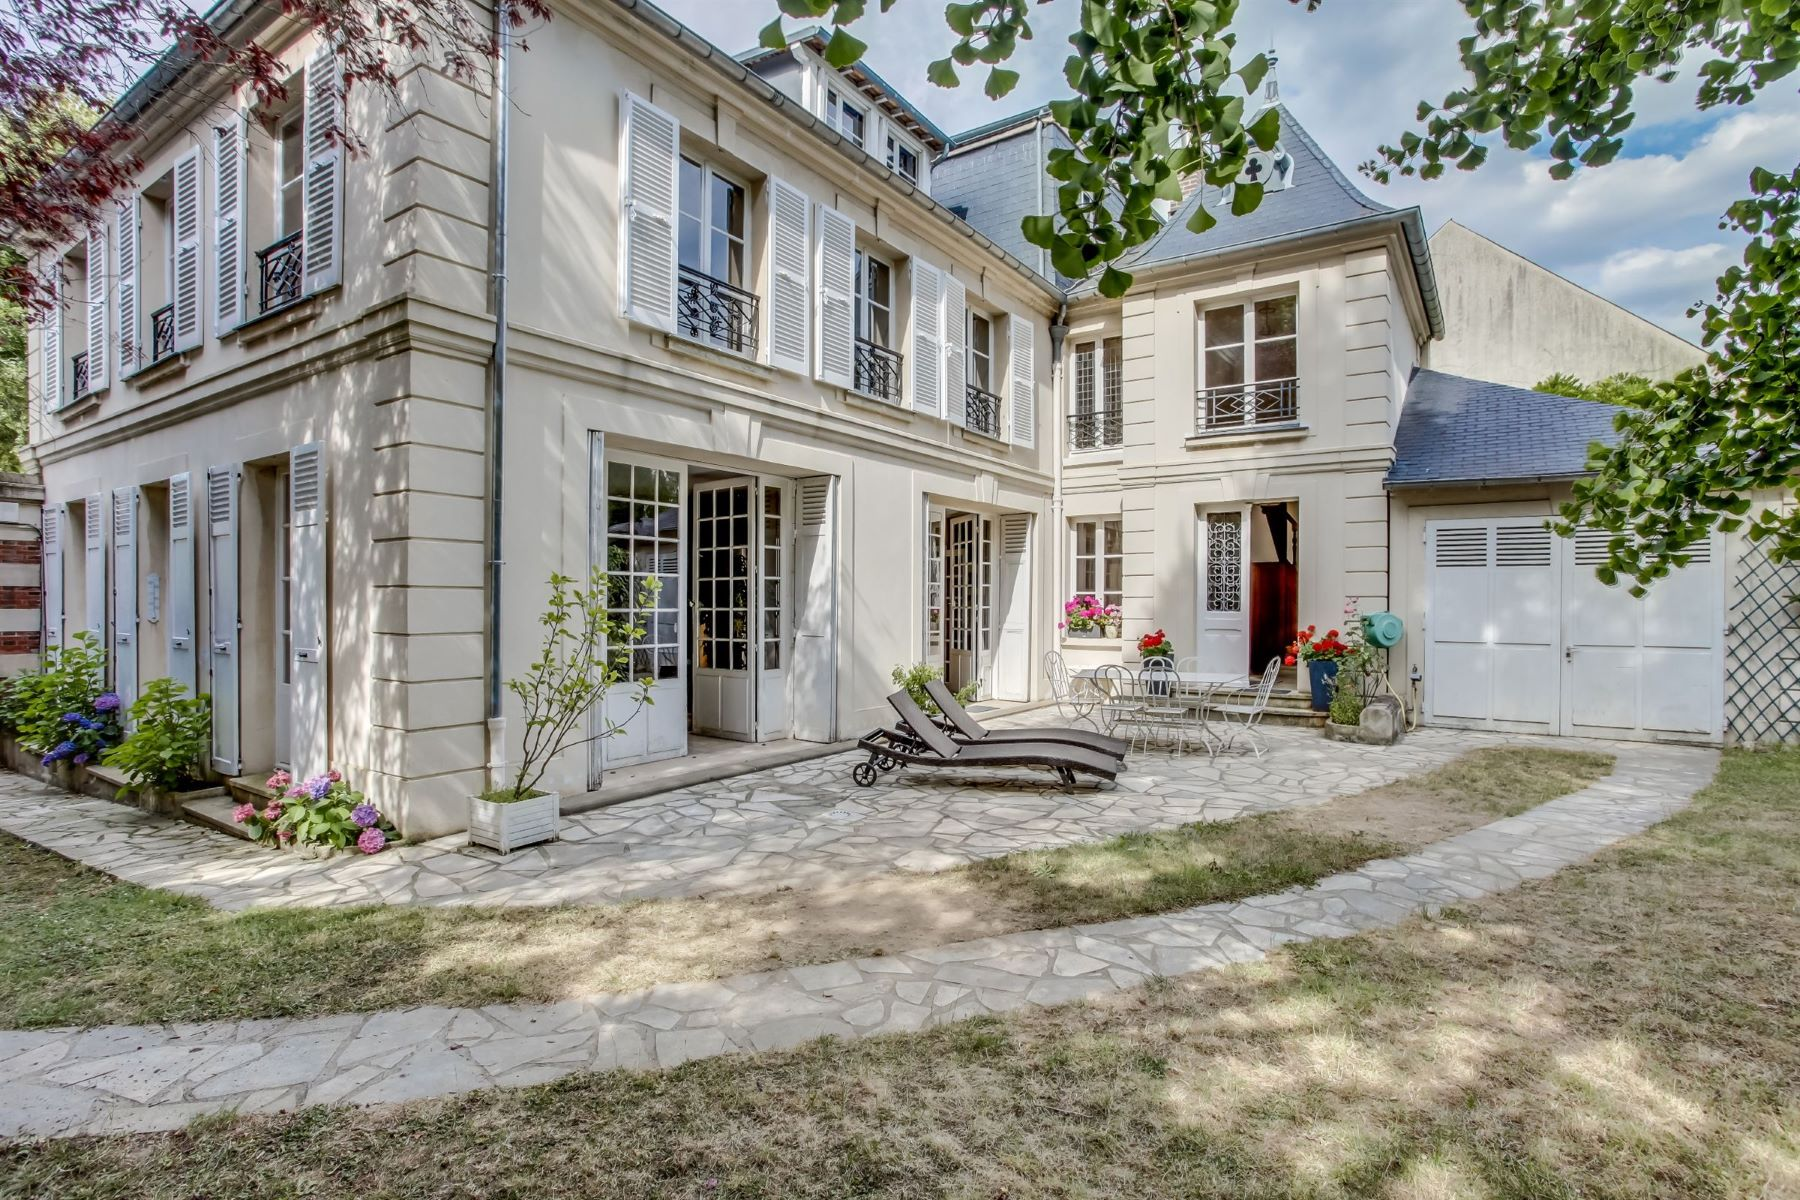 Single Family Home for Sale at Private Mansion facing full South for sale In Marnes-la-Coquette - Village Marnes La Coquette, Ile-De-France, 92430 France